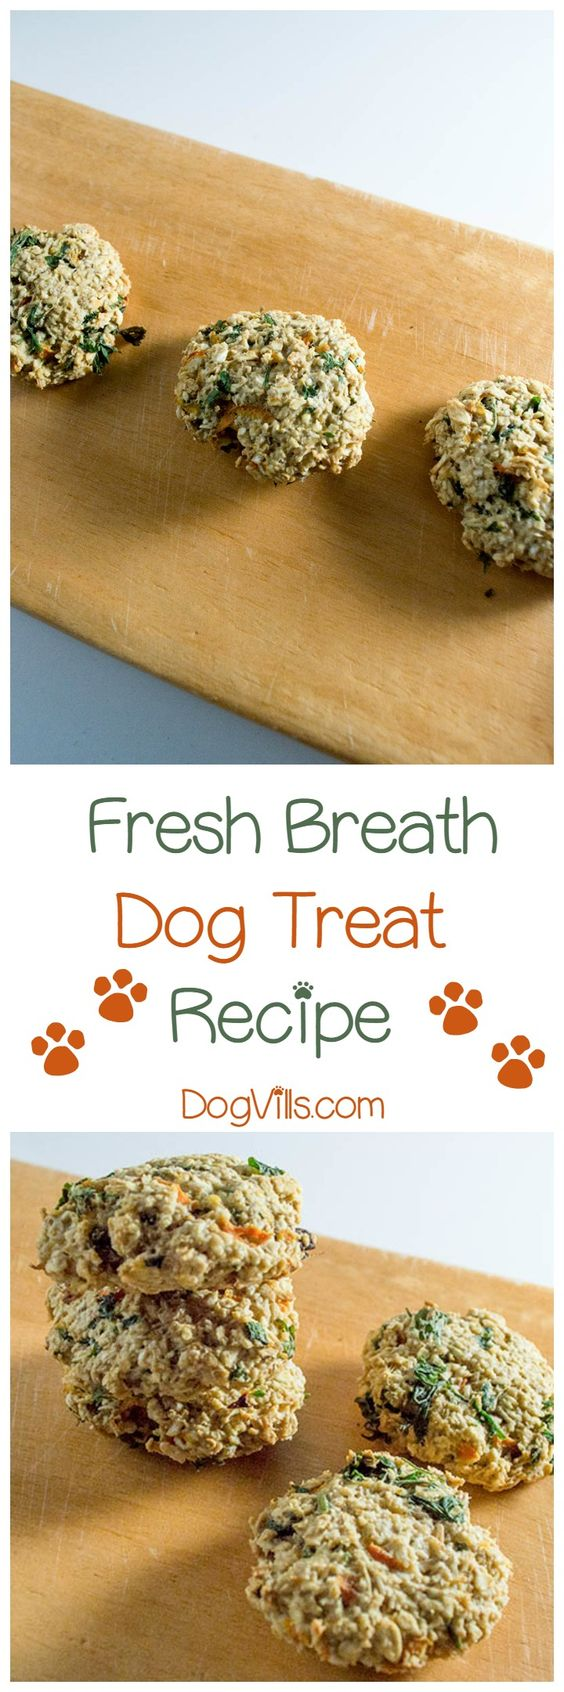 Make your own Homemade Dog Treats — 53+ Recipes in NEW DIY Dog Treat Recipe Cookbook for the Busy Dog Lover - Great Gifts for Dog Lovers and their Dogs in this Amazon Bestseller Dog .